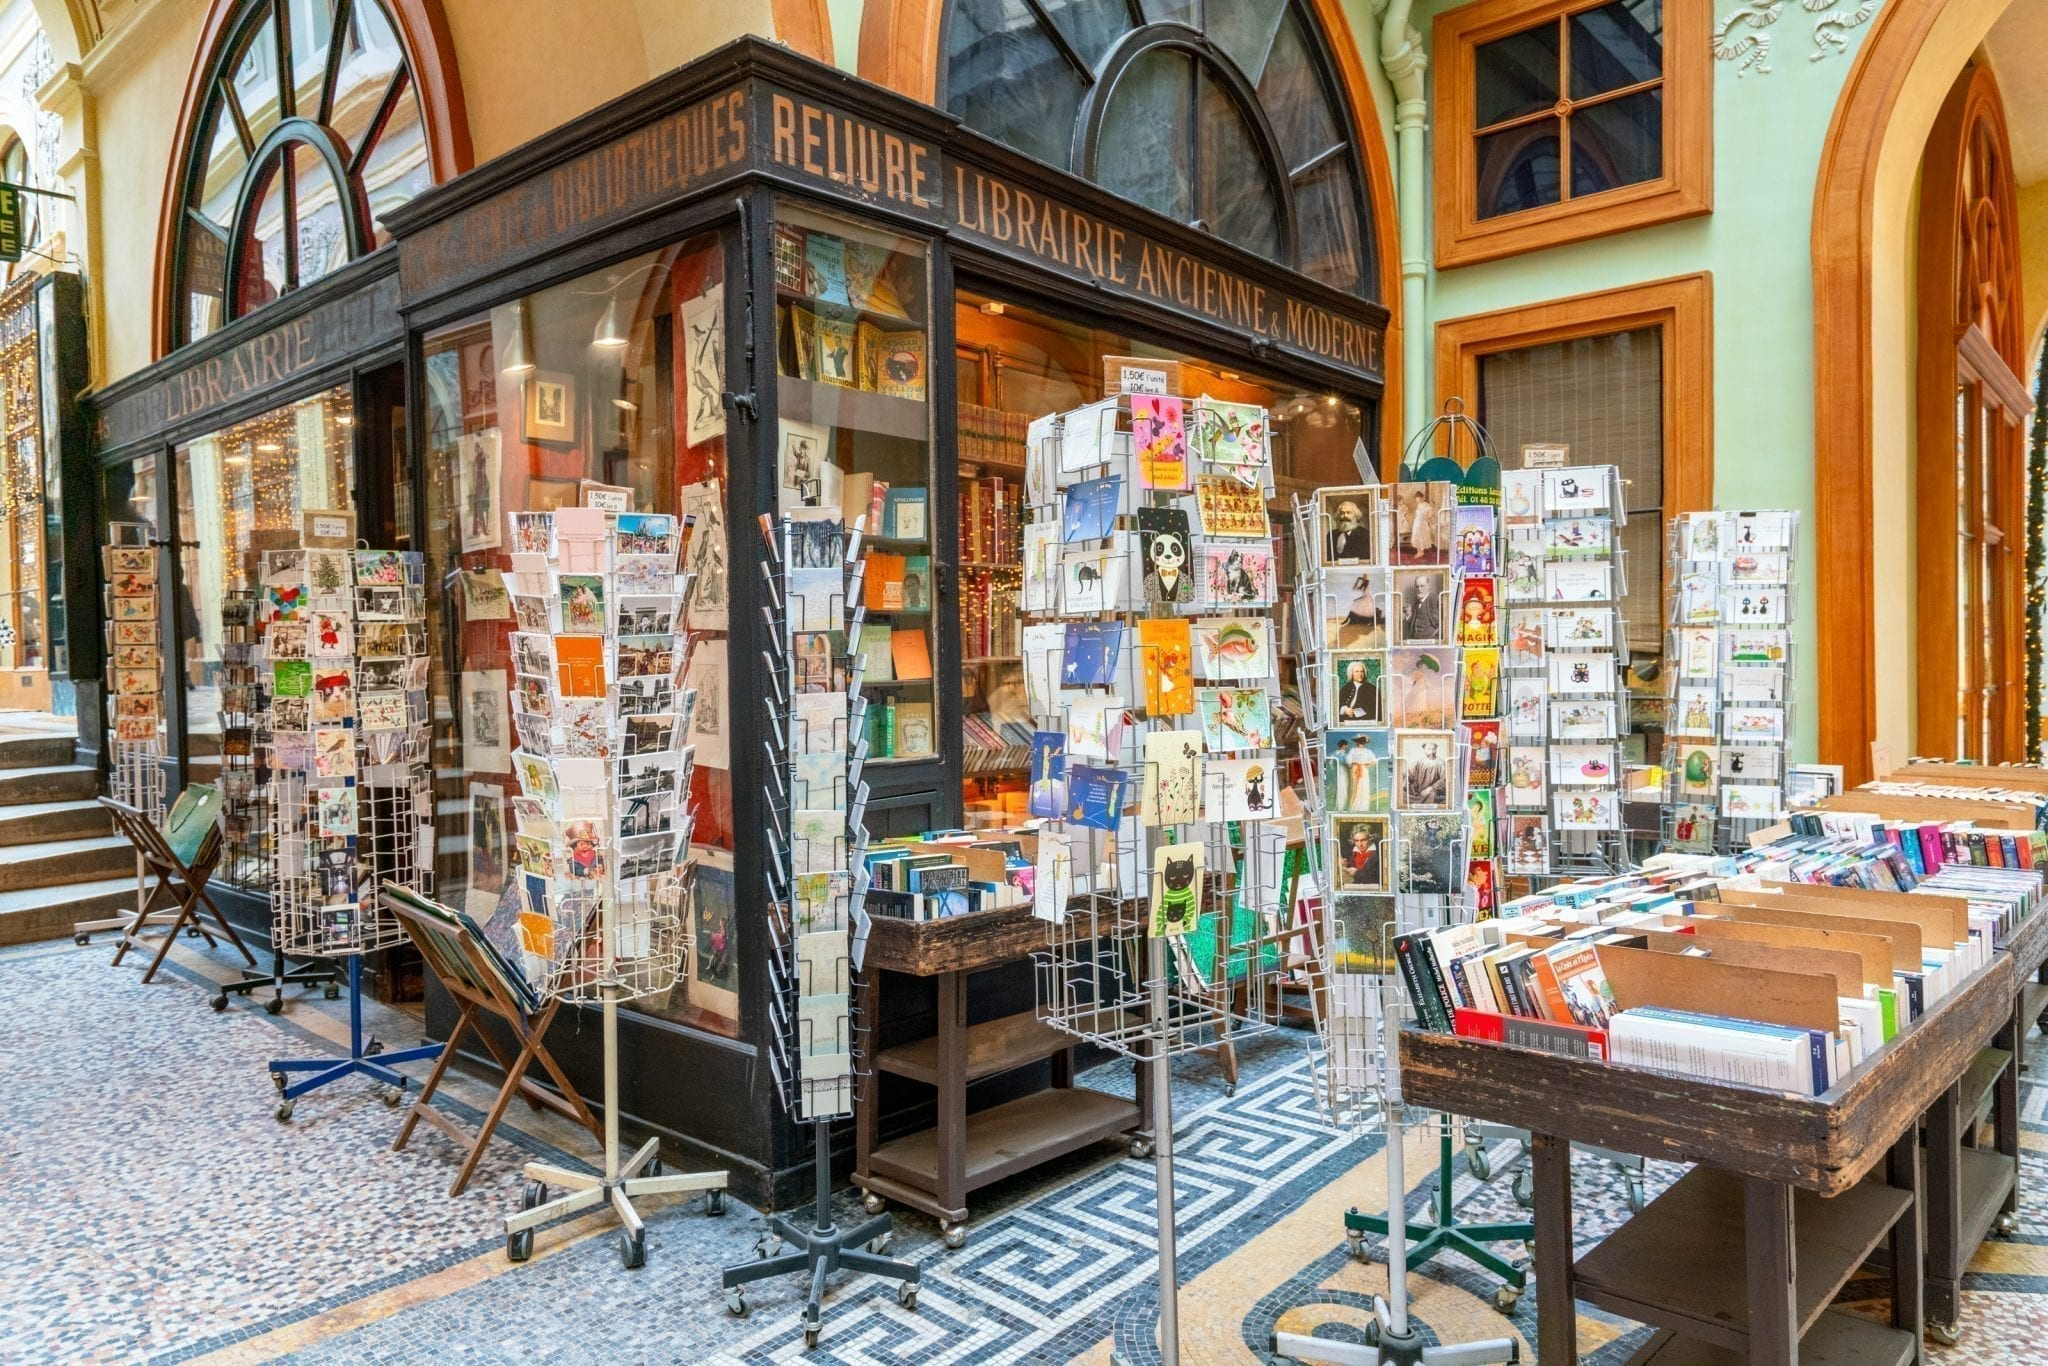 Librairie Jousseaume in Galerie Vivienne in Paris, one of the most beautiful bookstores in europe